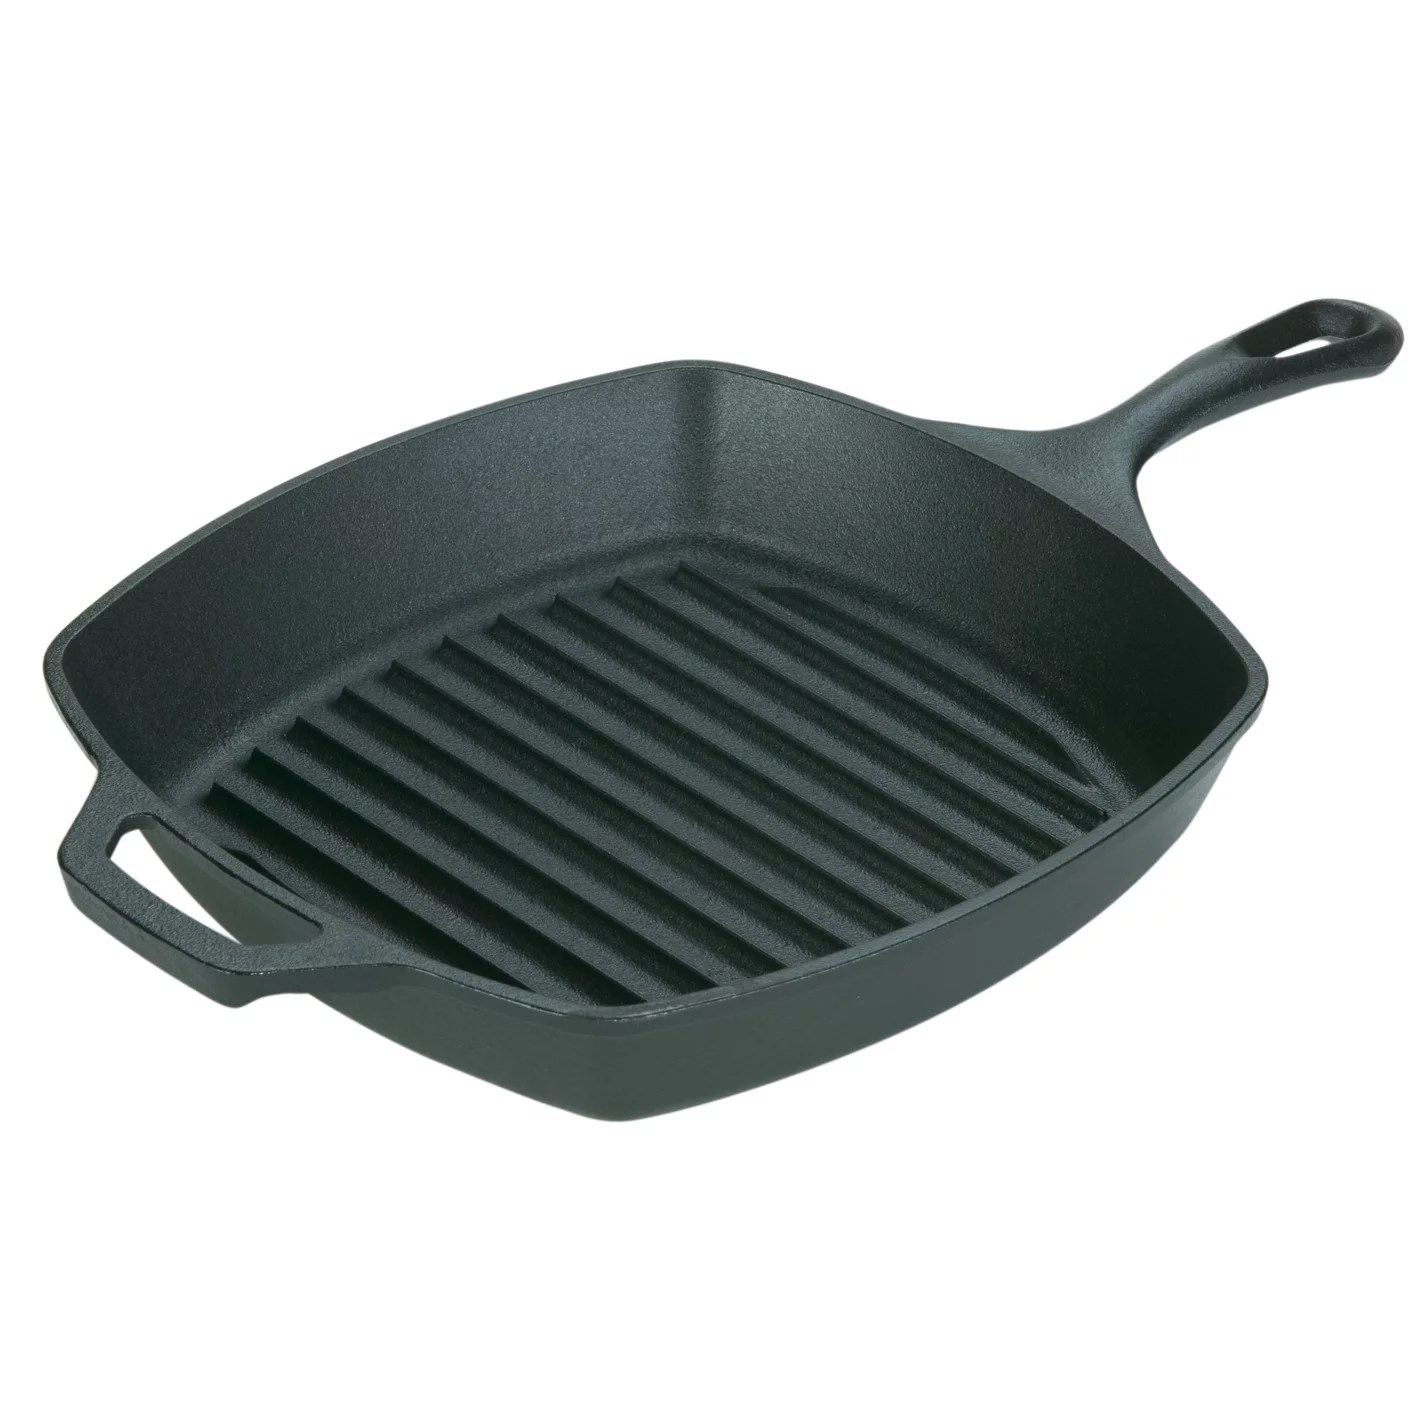 Grill Frying Pan Lodge Cast Iron 10 5